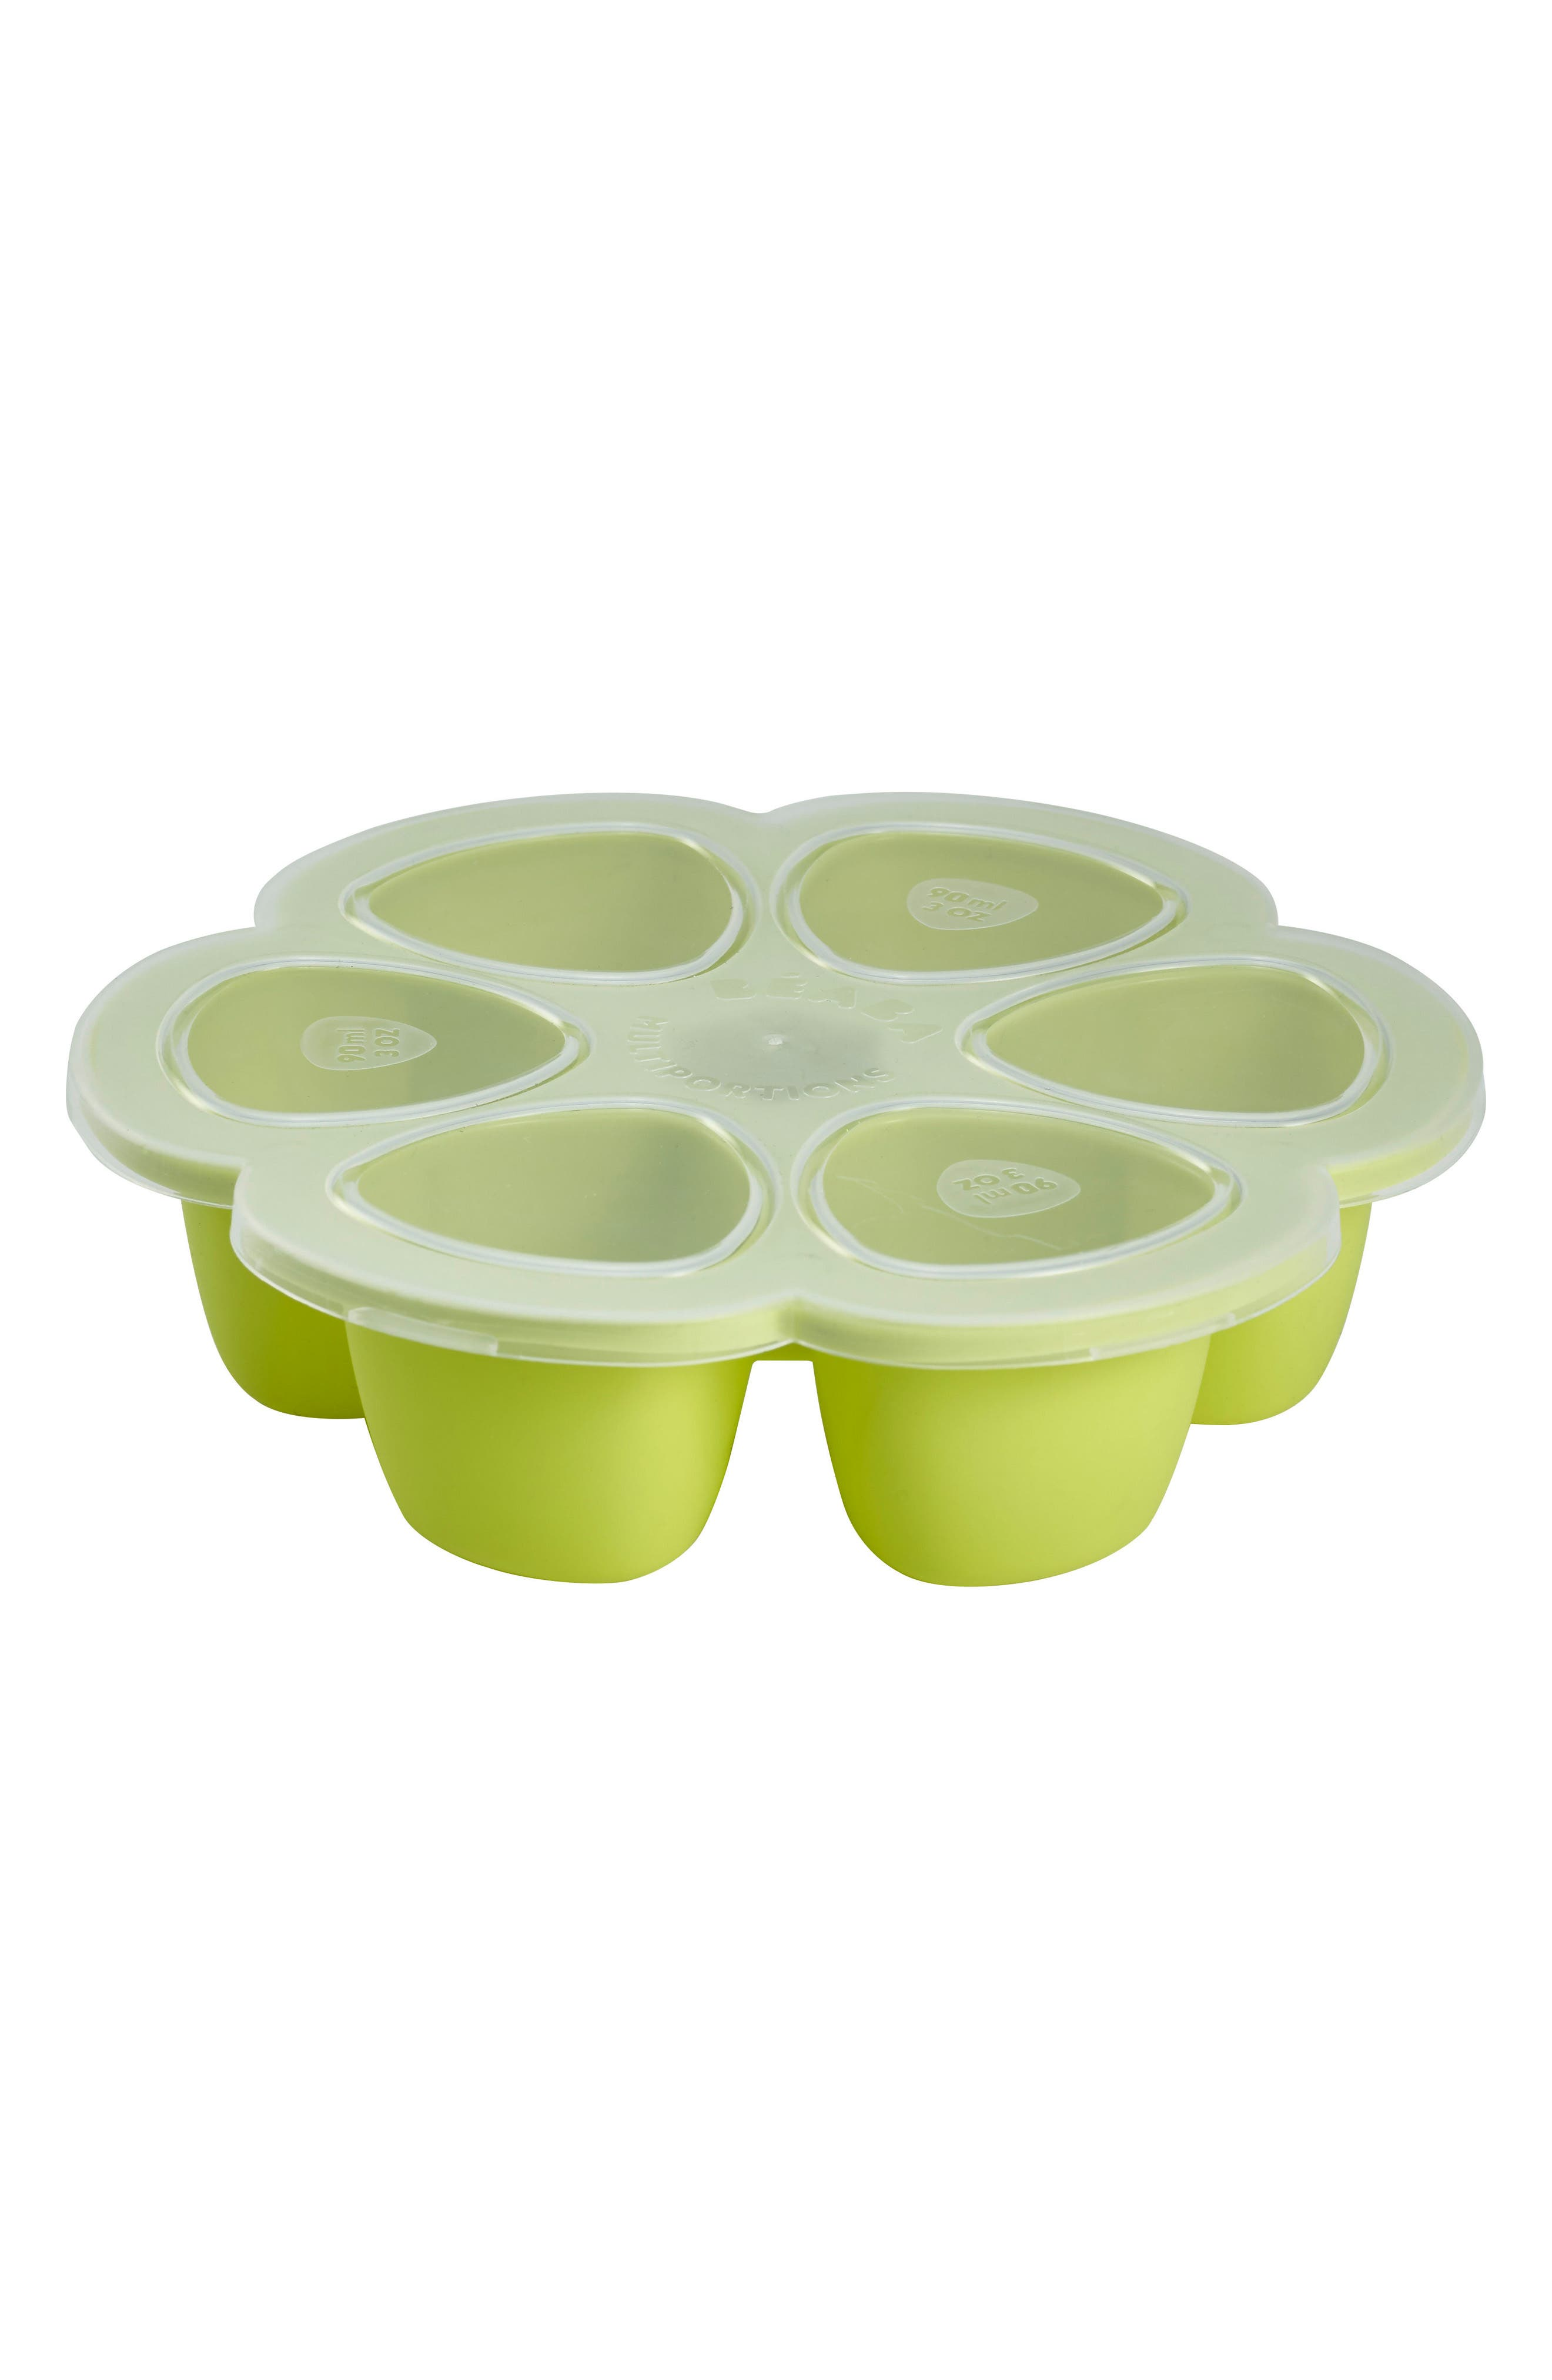 Main Image - BÉABA 'Multiportions™' Silicone 5 oz. Food Cup Tray